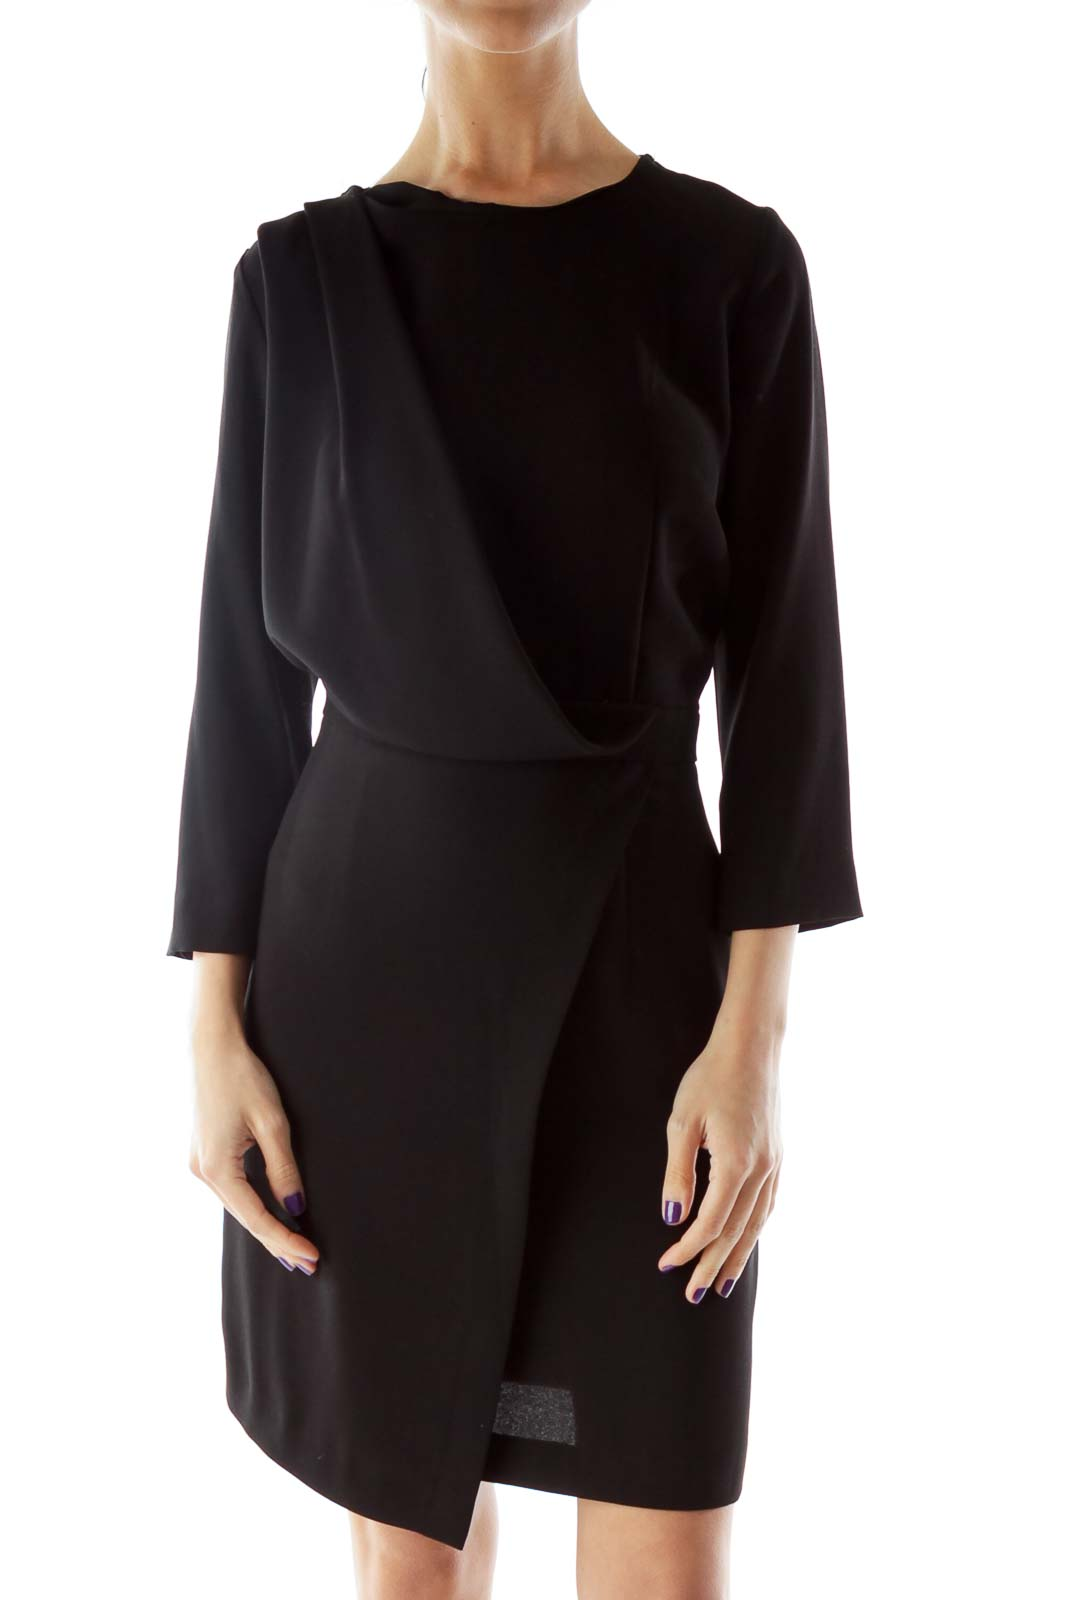 Black Three-Quarter Sleeve Dress with Wrap Detail Front